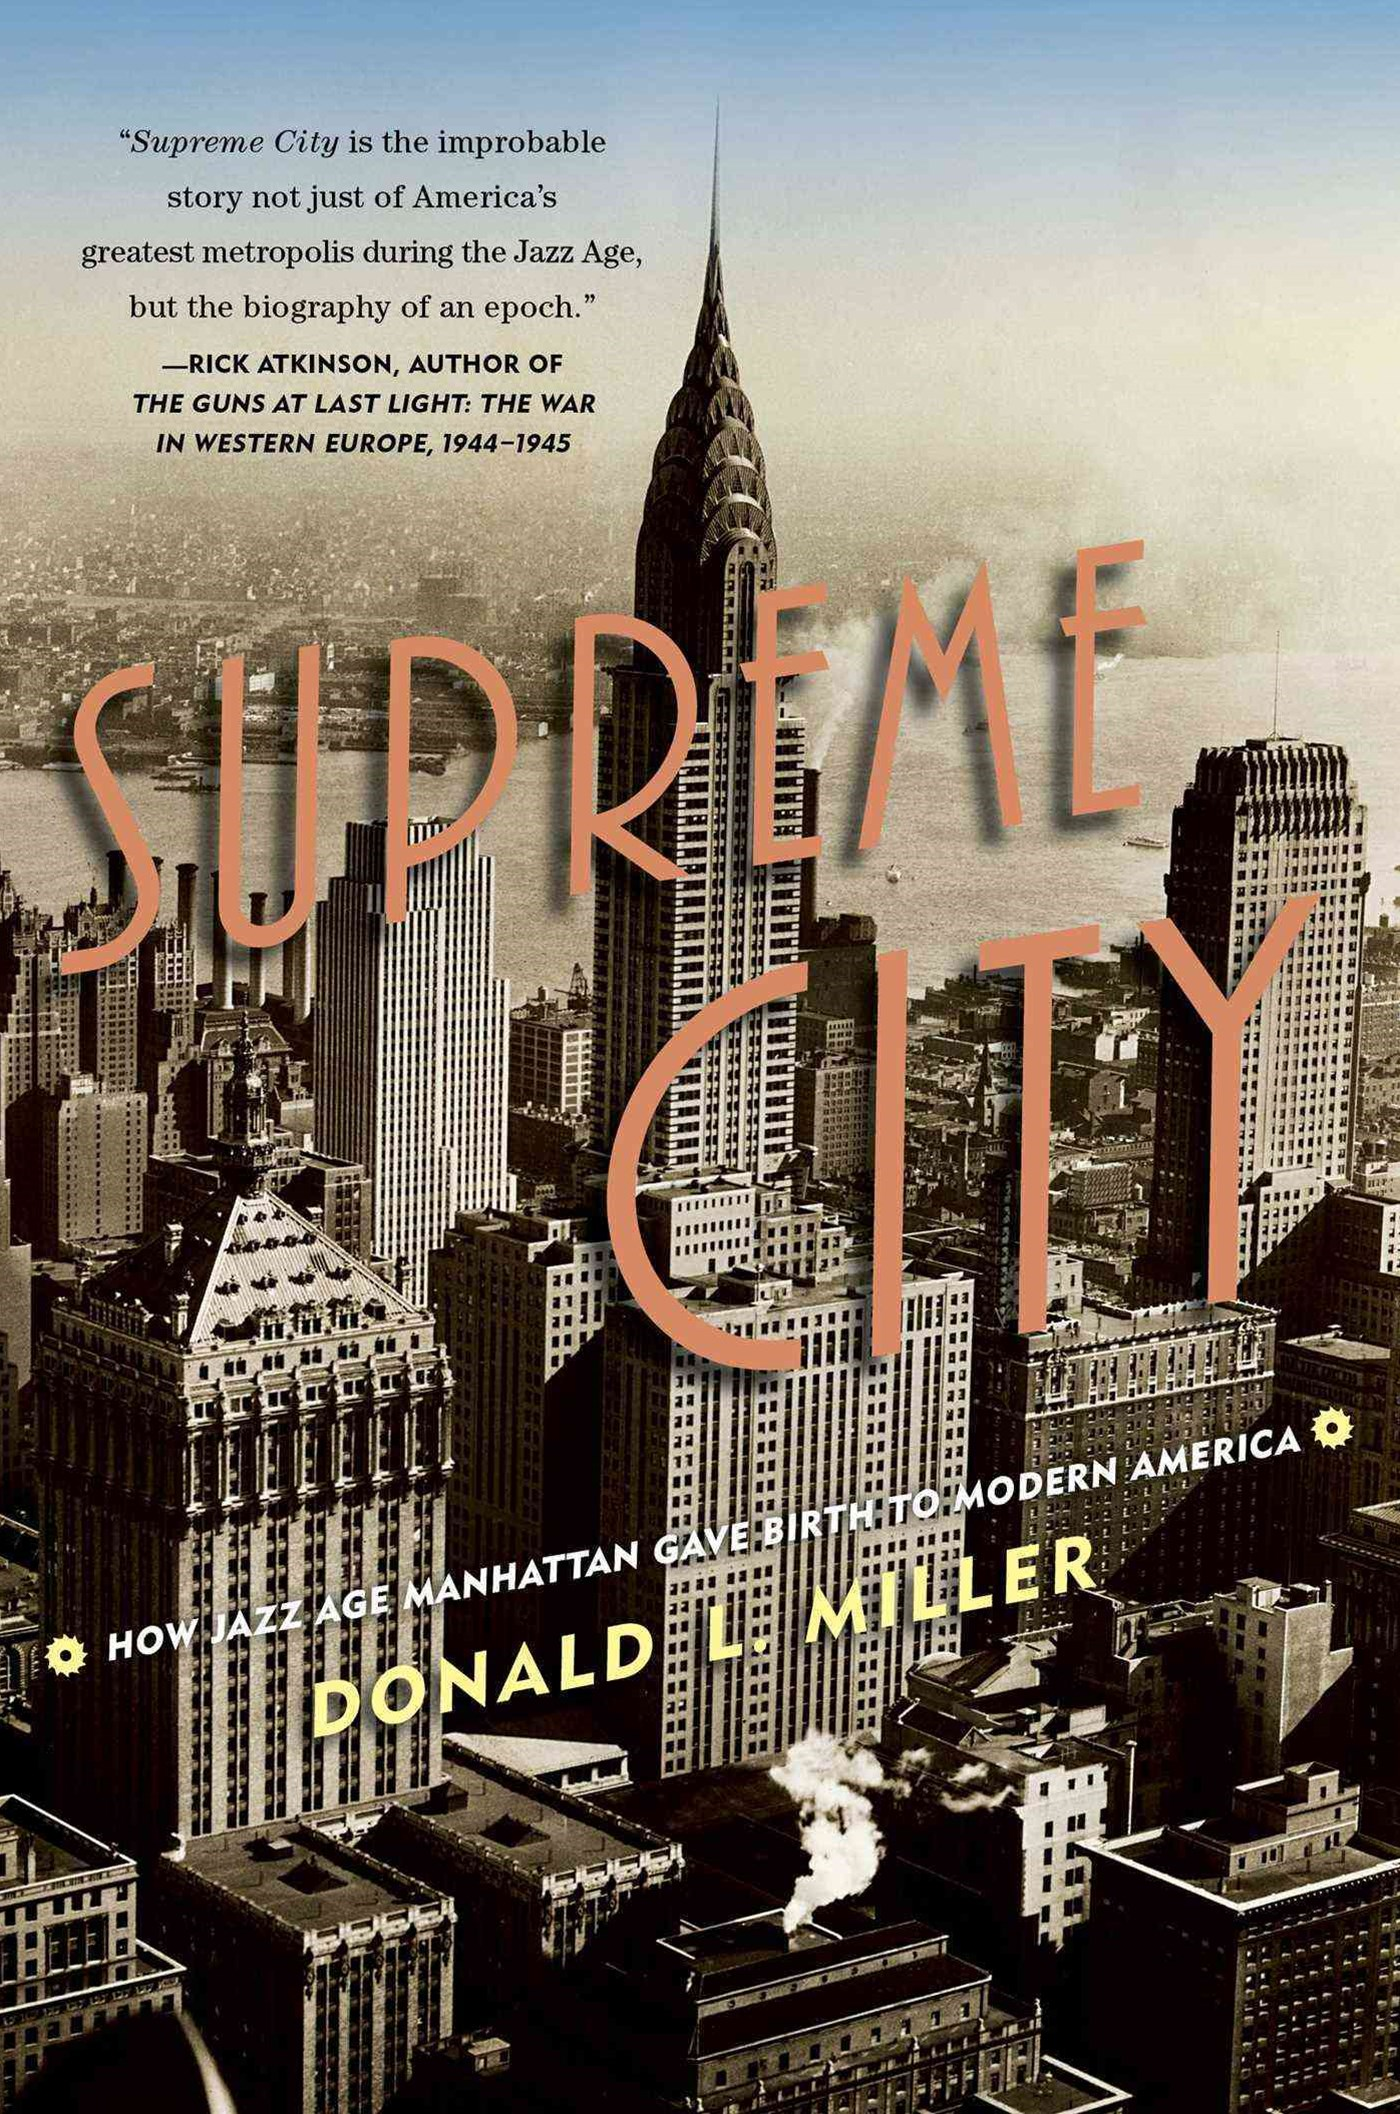 Supreme City: How Jazz Age Manhattan Gave Birth to Modern America